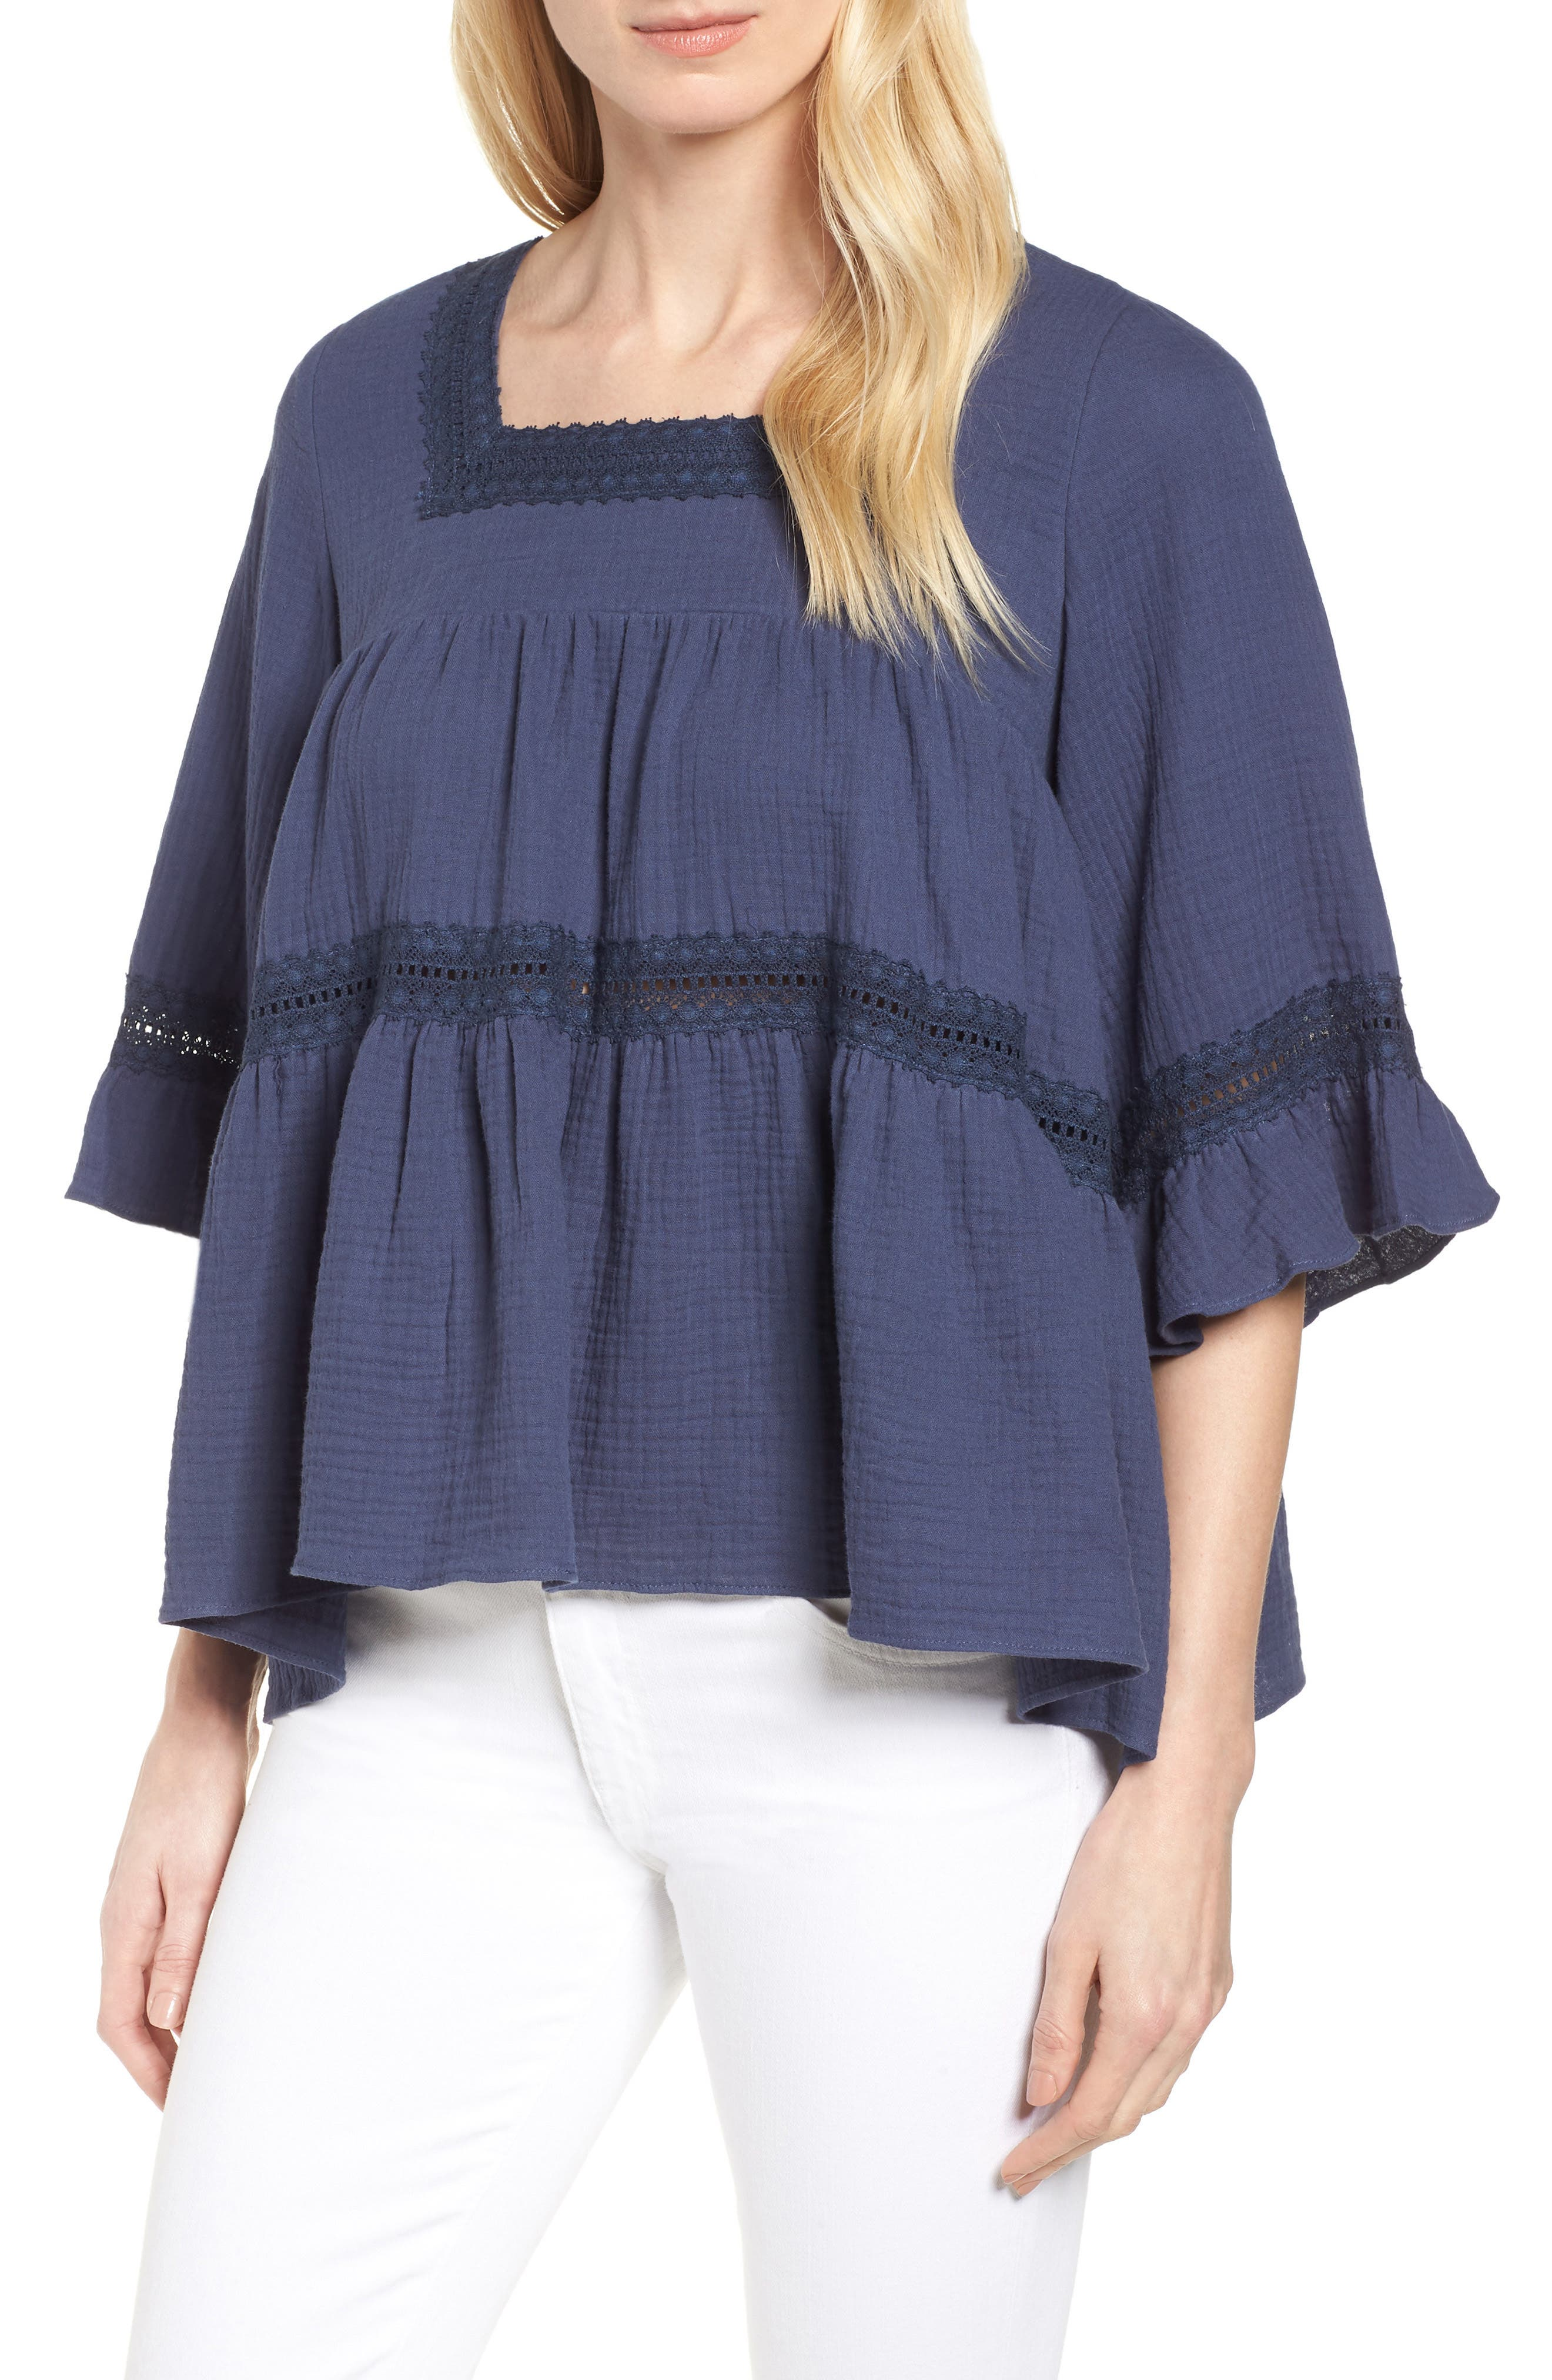 Lace Trim Blouse,                             Main thumbnail 1, color,                             Navy Indigo